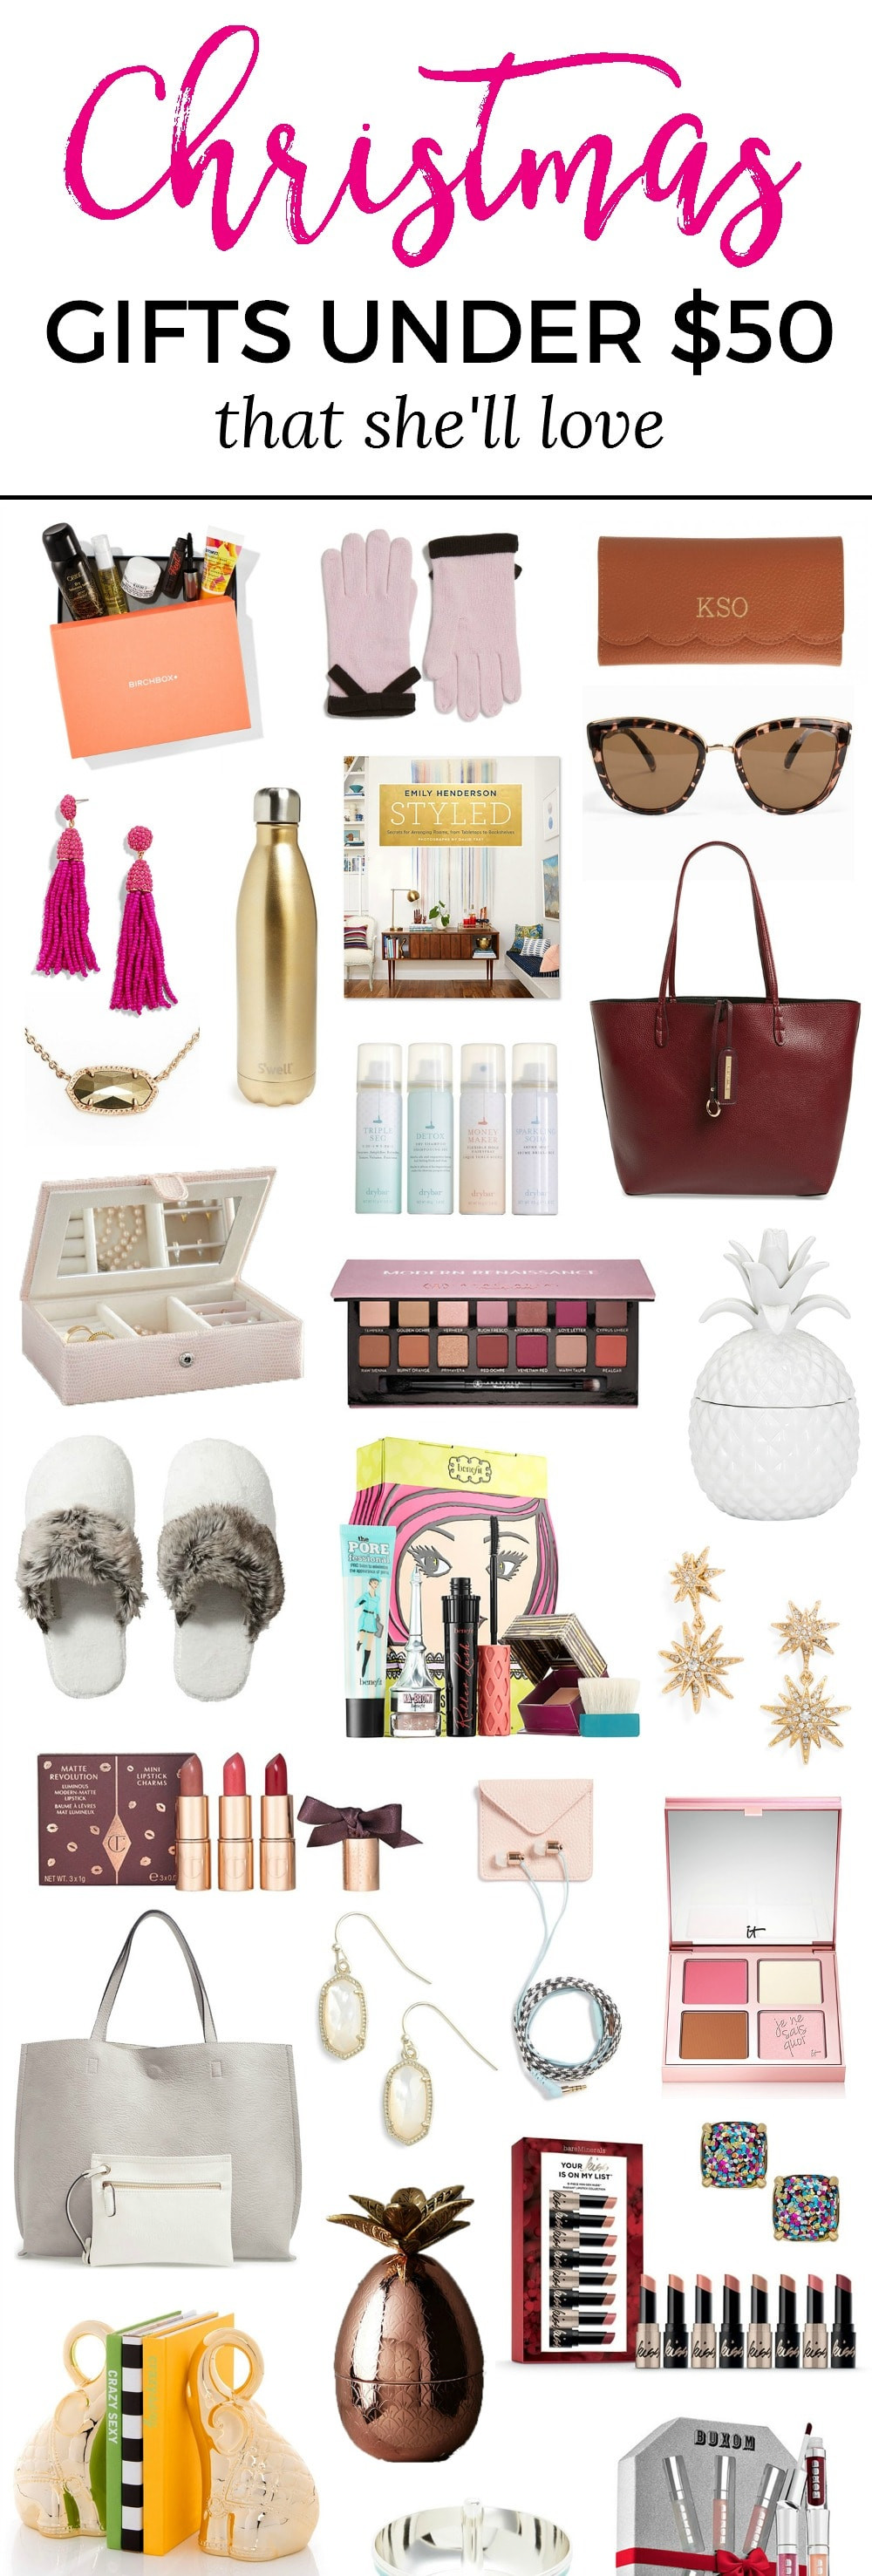 Best Christmas Gift Ideas  The Best Christmas Gift Ideas for Women under $50